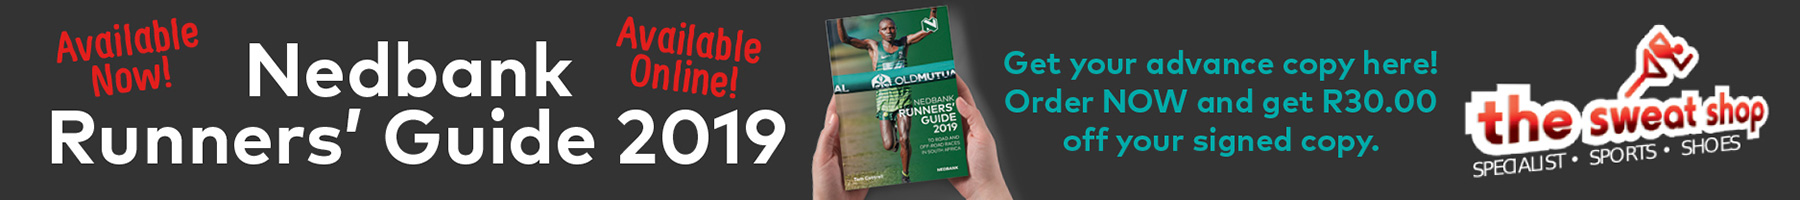 Runners' Guide 2019 discount banner- Sweatshop